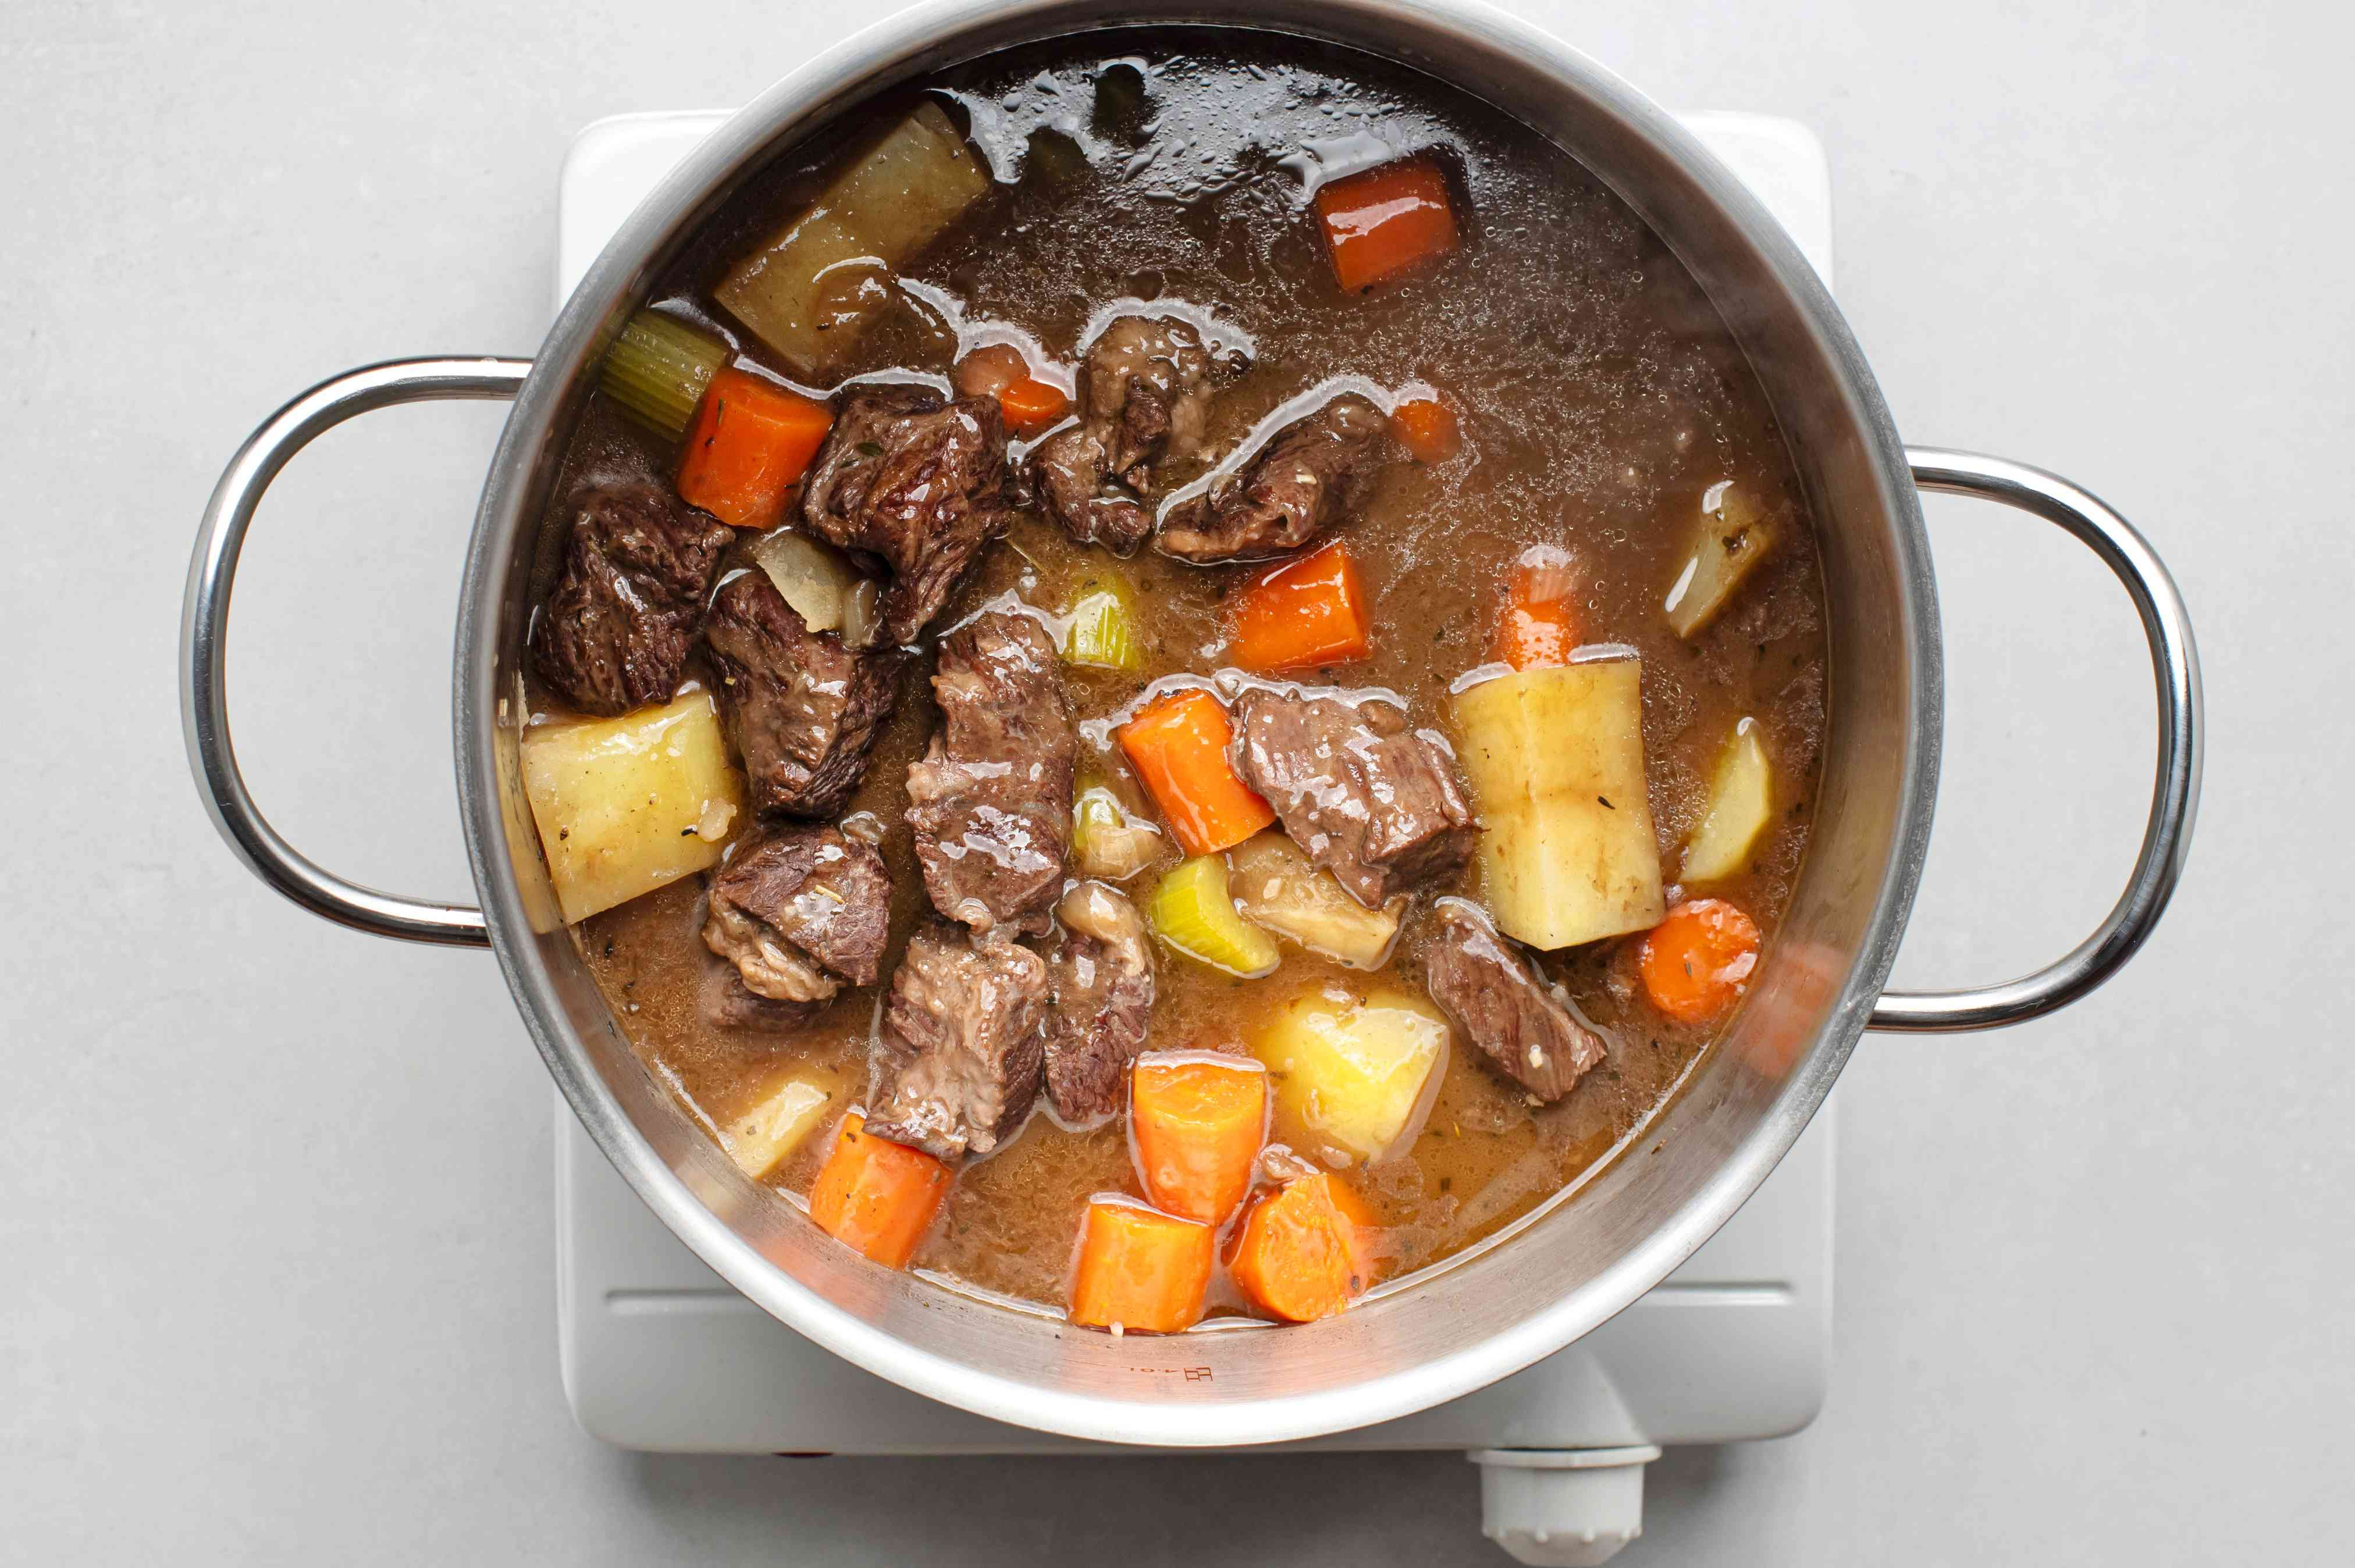 Add vegetables to the beef mixture in the pot